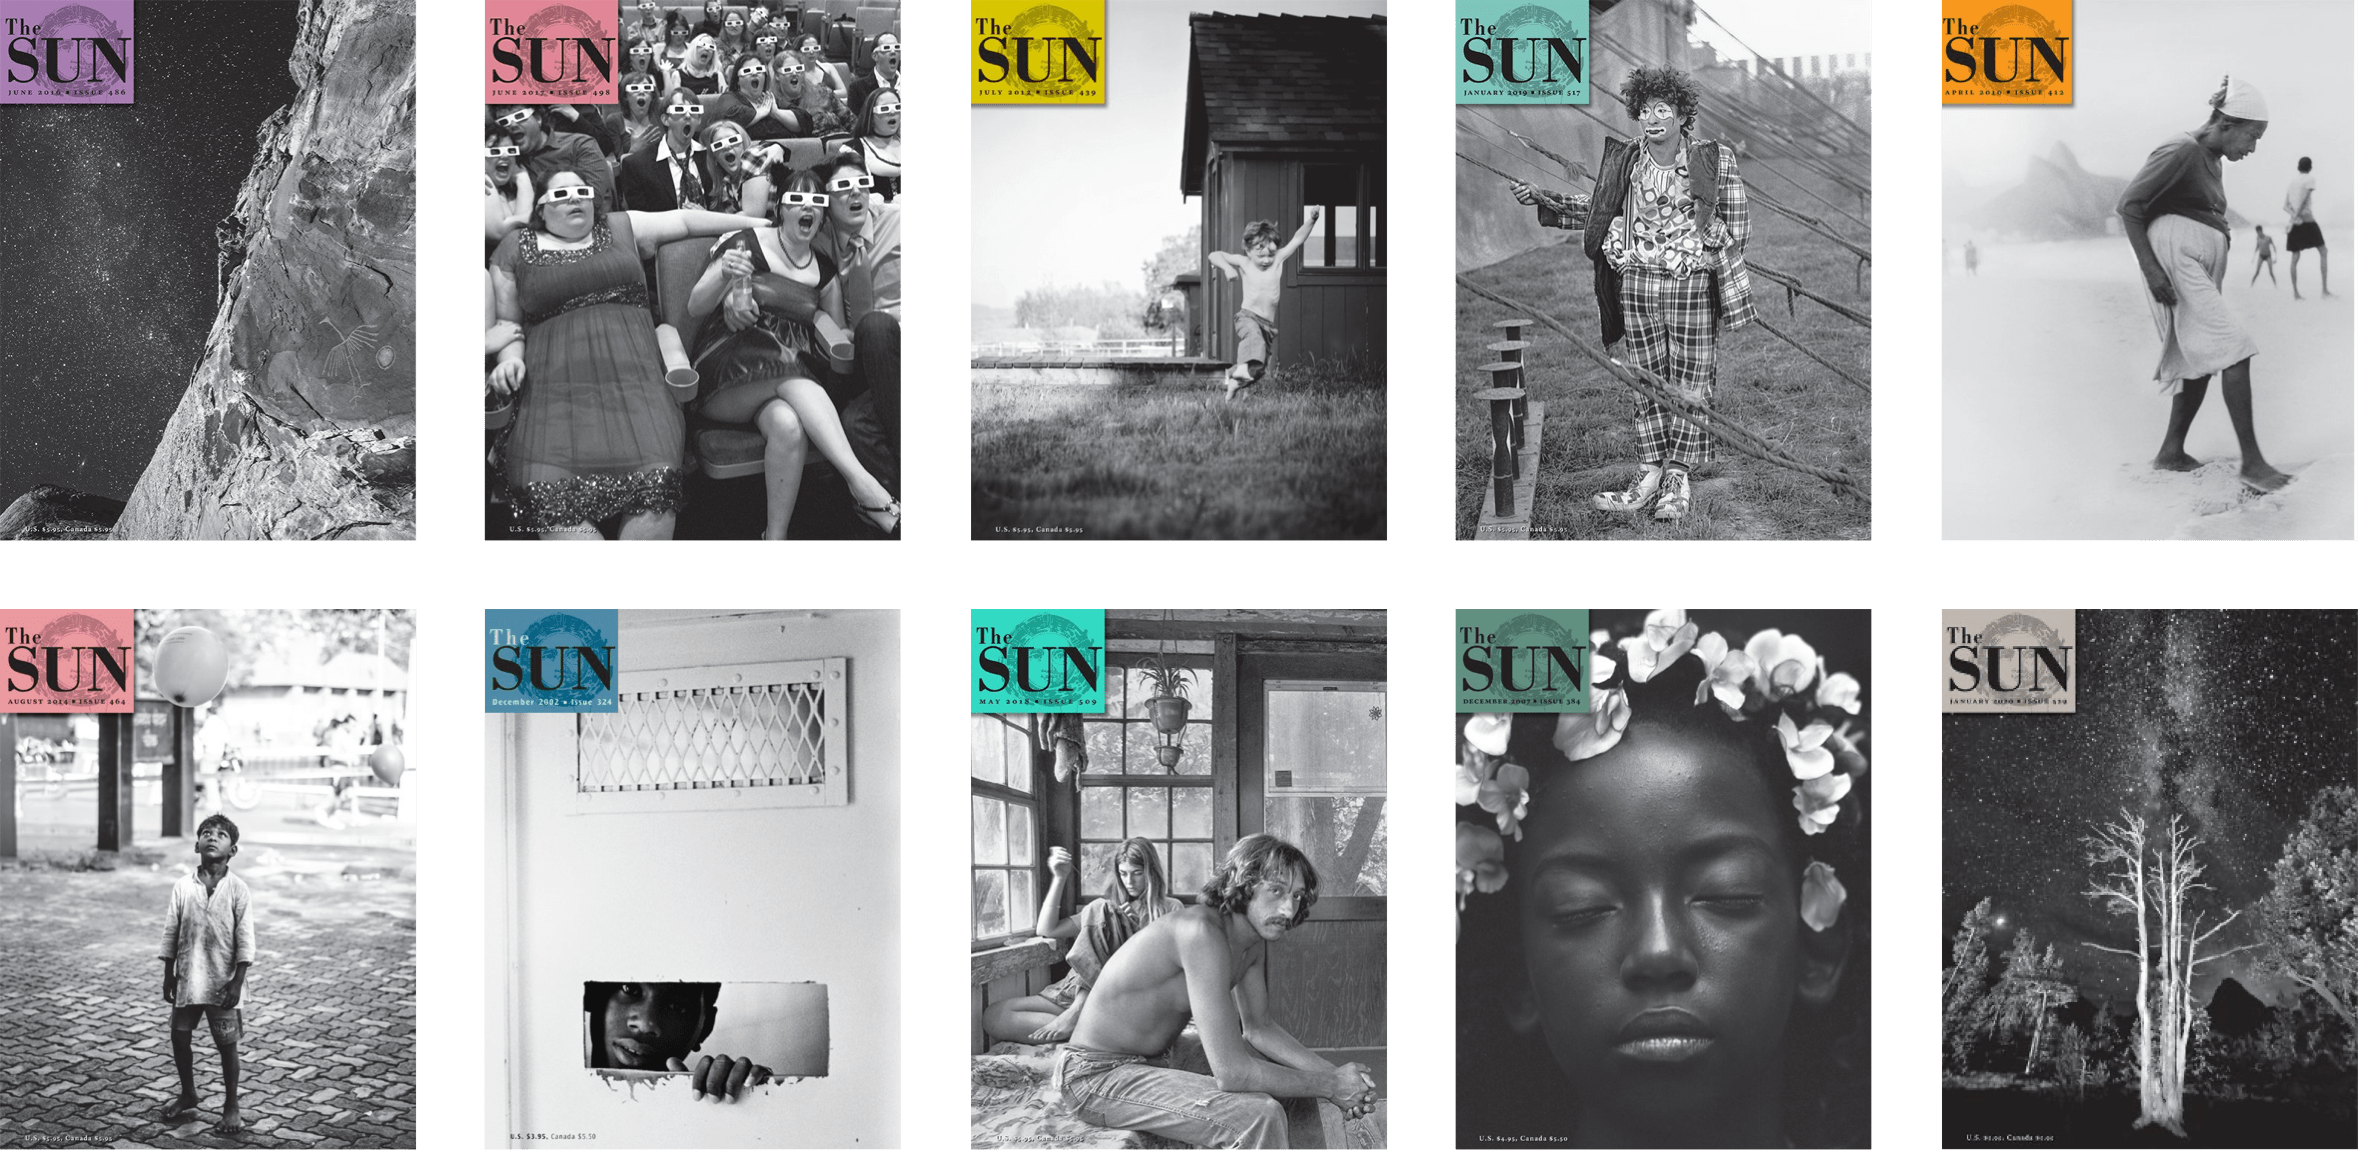 Various magazine covers through the years